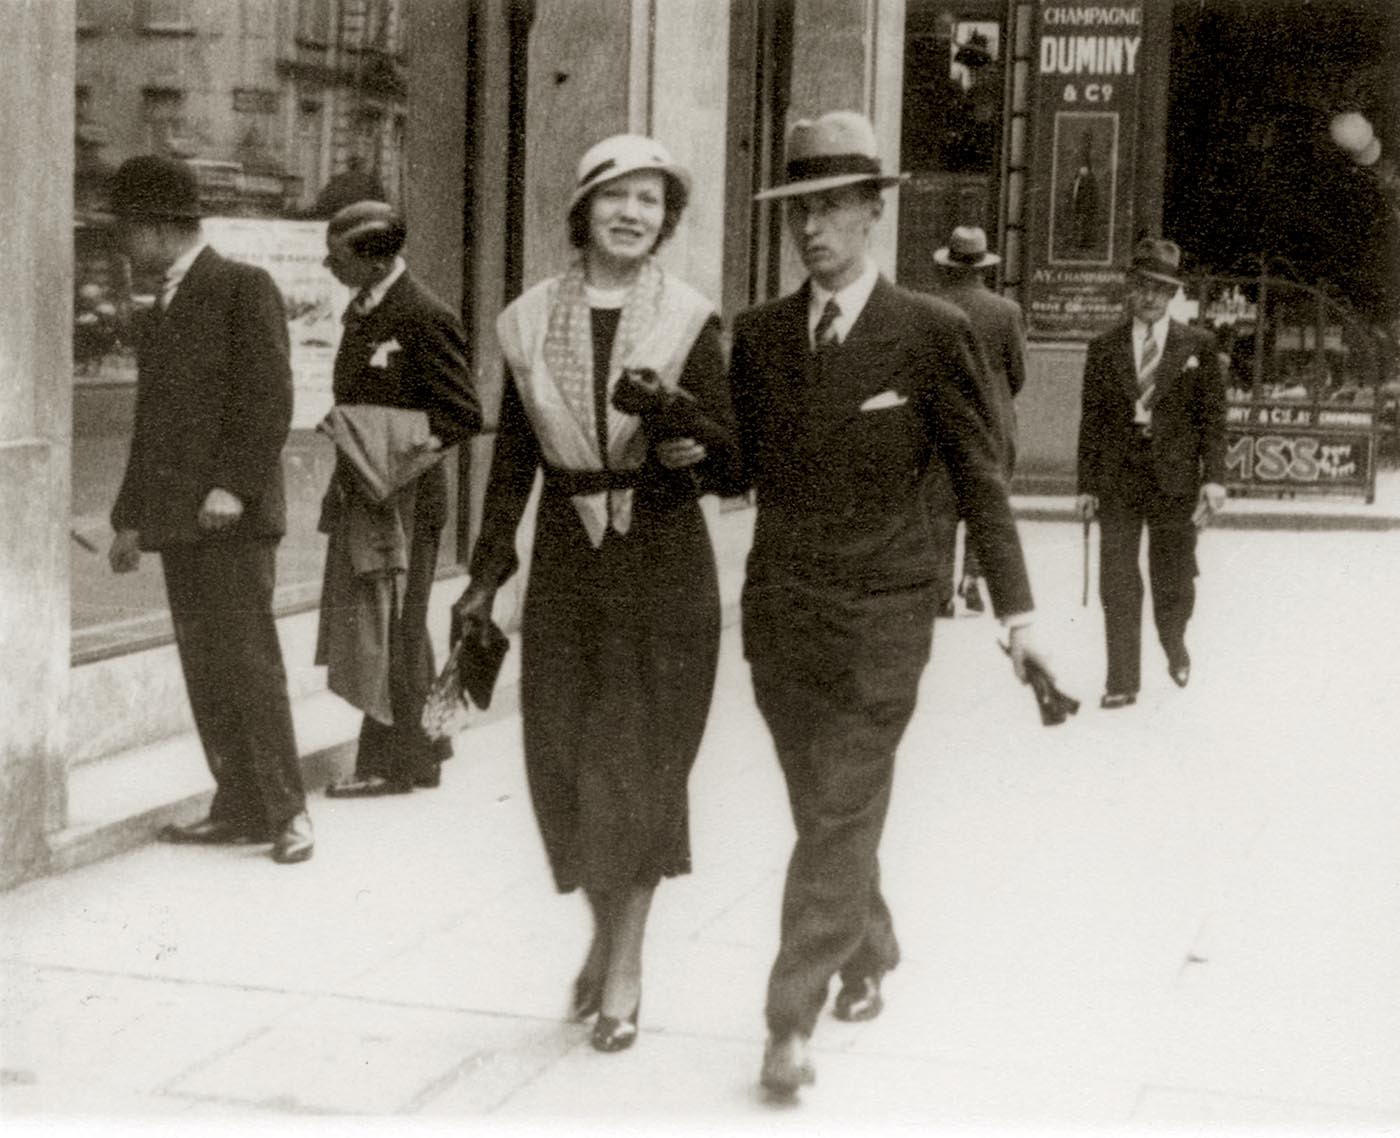 Hergé and Germaine in 1932